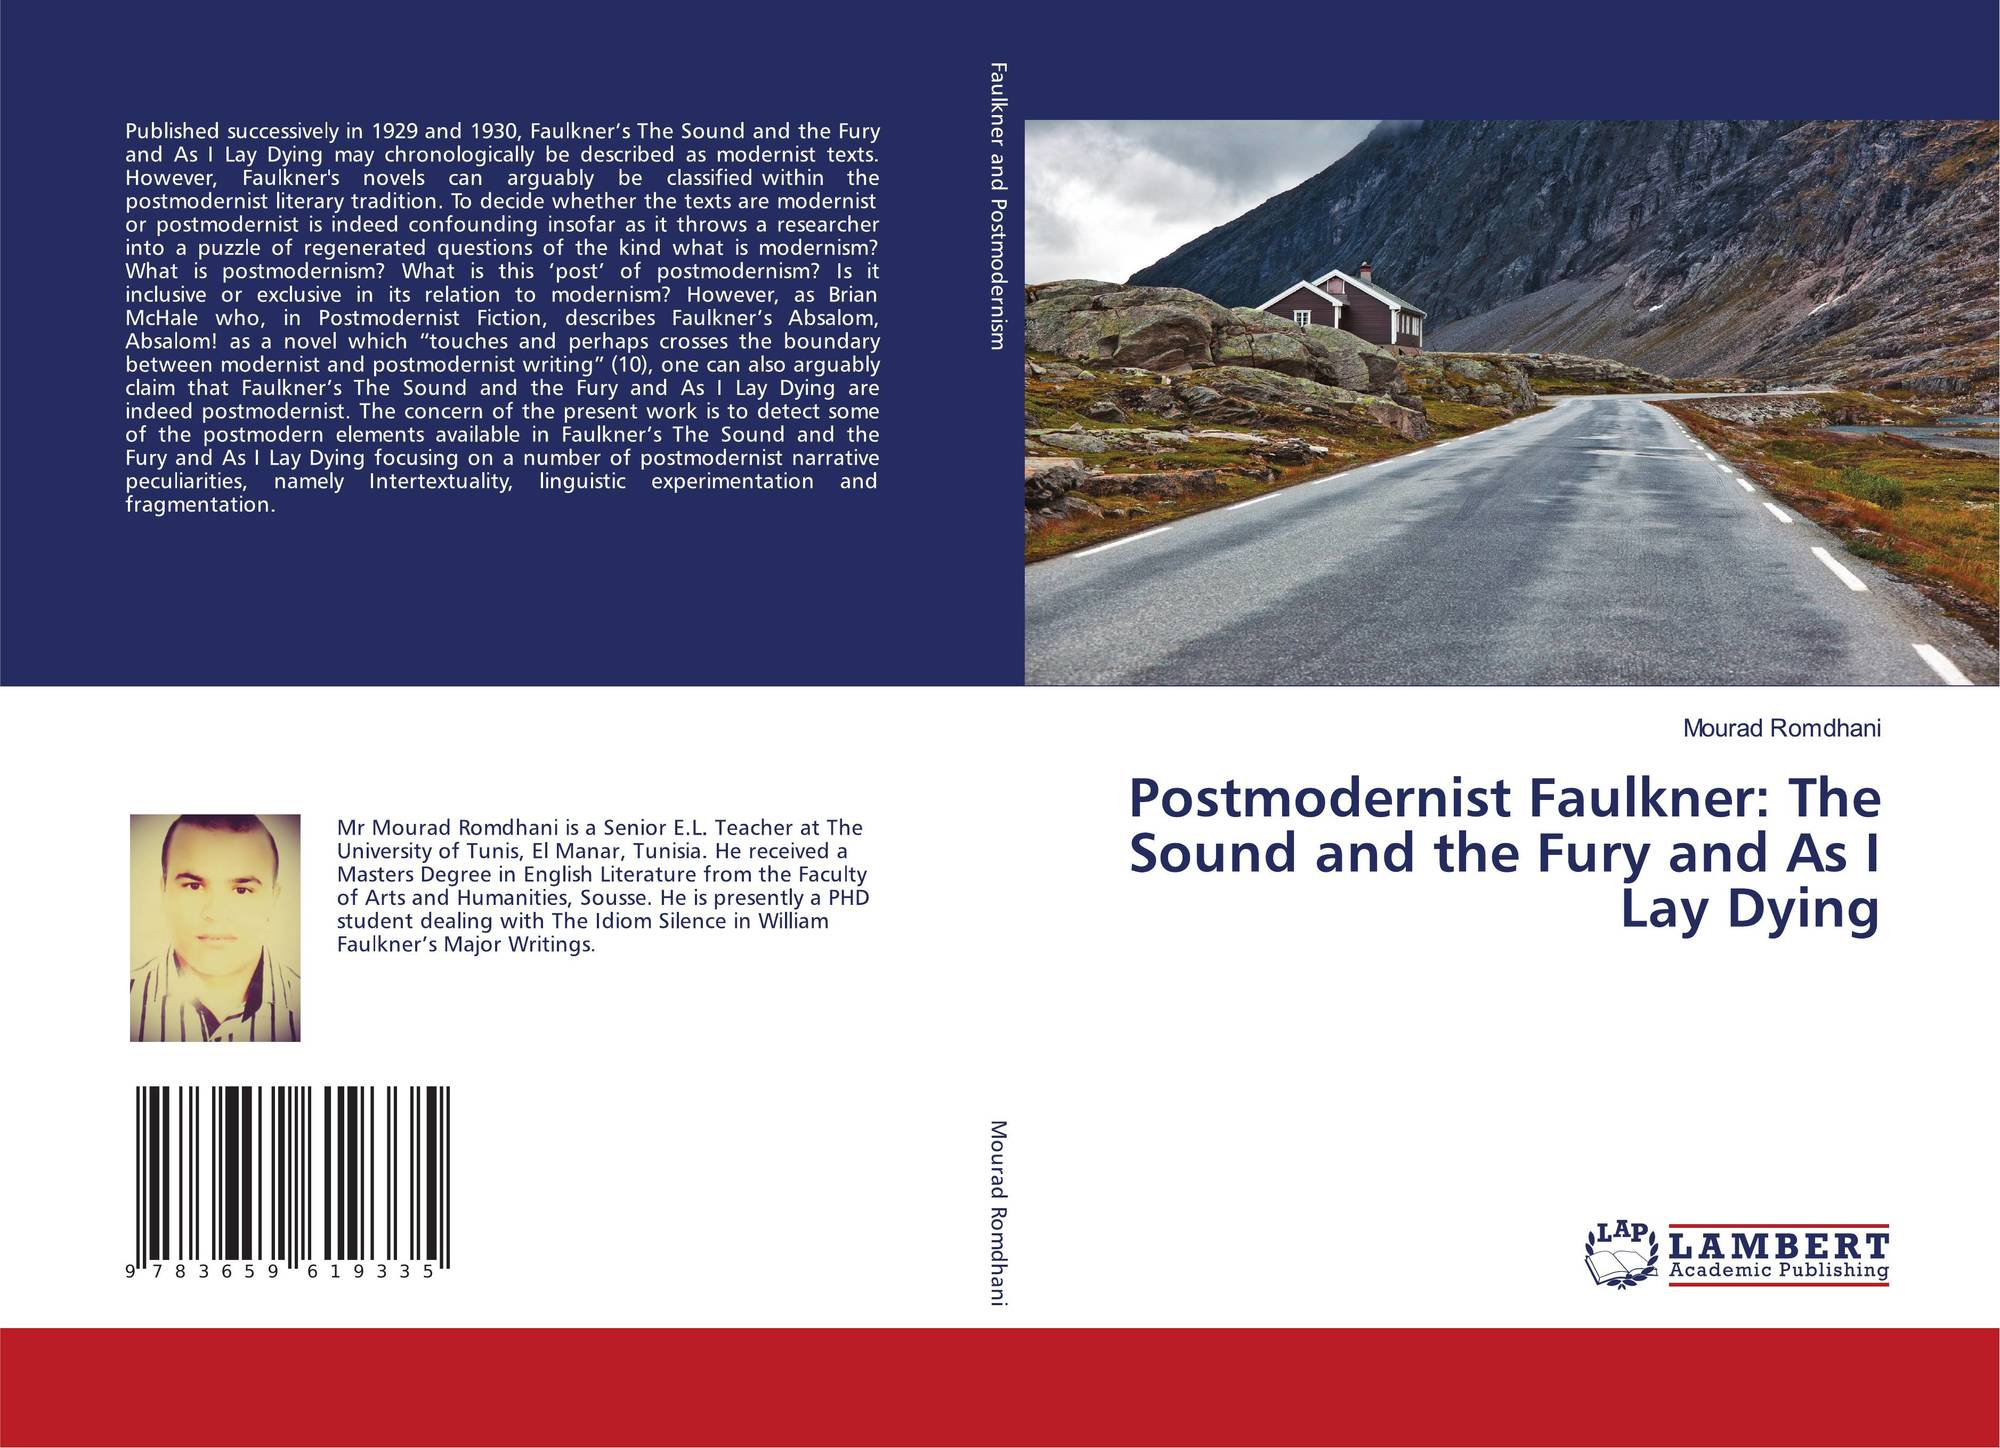 the postmodernist features in absalom absalom english literature essay – the most faulknerian faulkner book this novel is a historical reconstruction by the fictional quentin compson (from the sound and the fury) of the long ago rise of thomas sutpen out of a bog of obscurity to become a wealthy landowner in mississippi, only to have it all destroyed again.